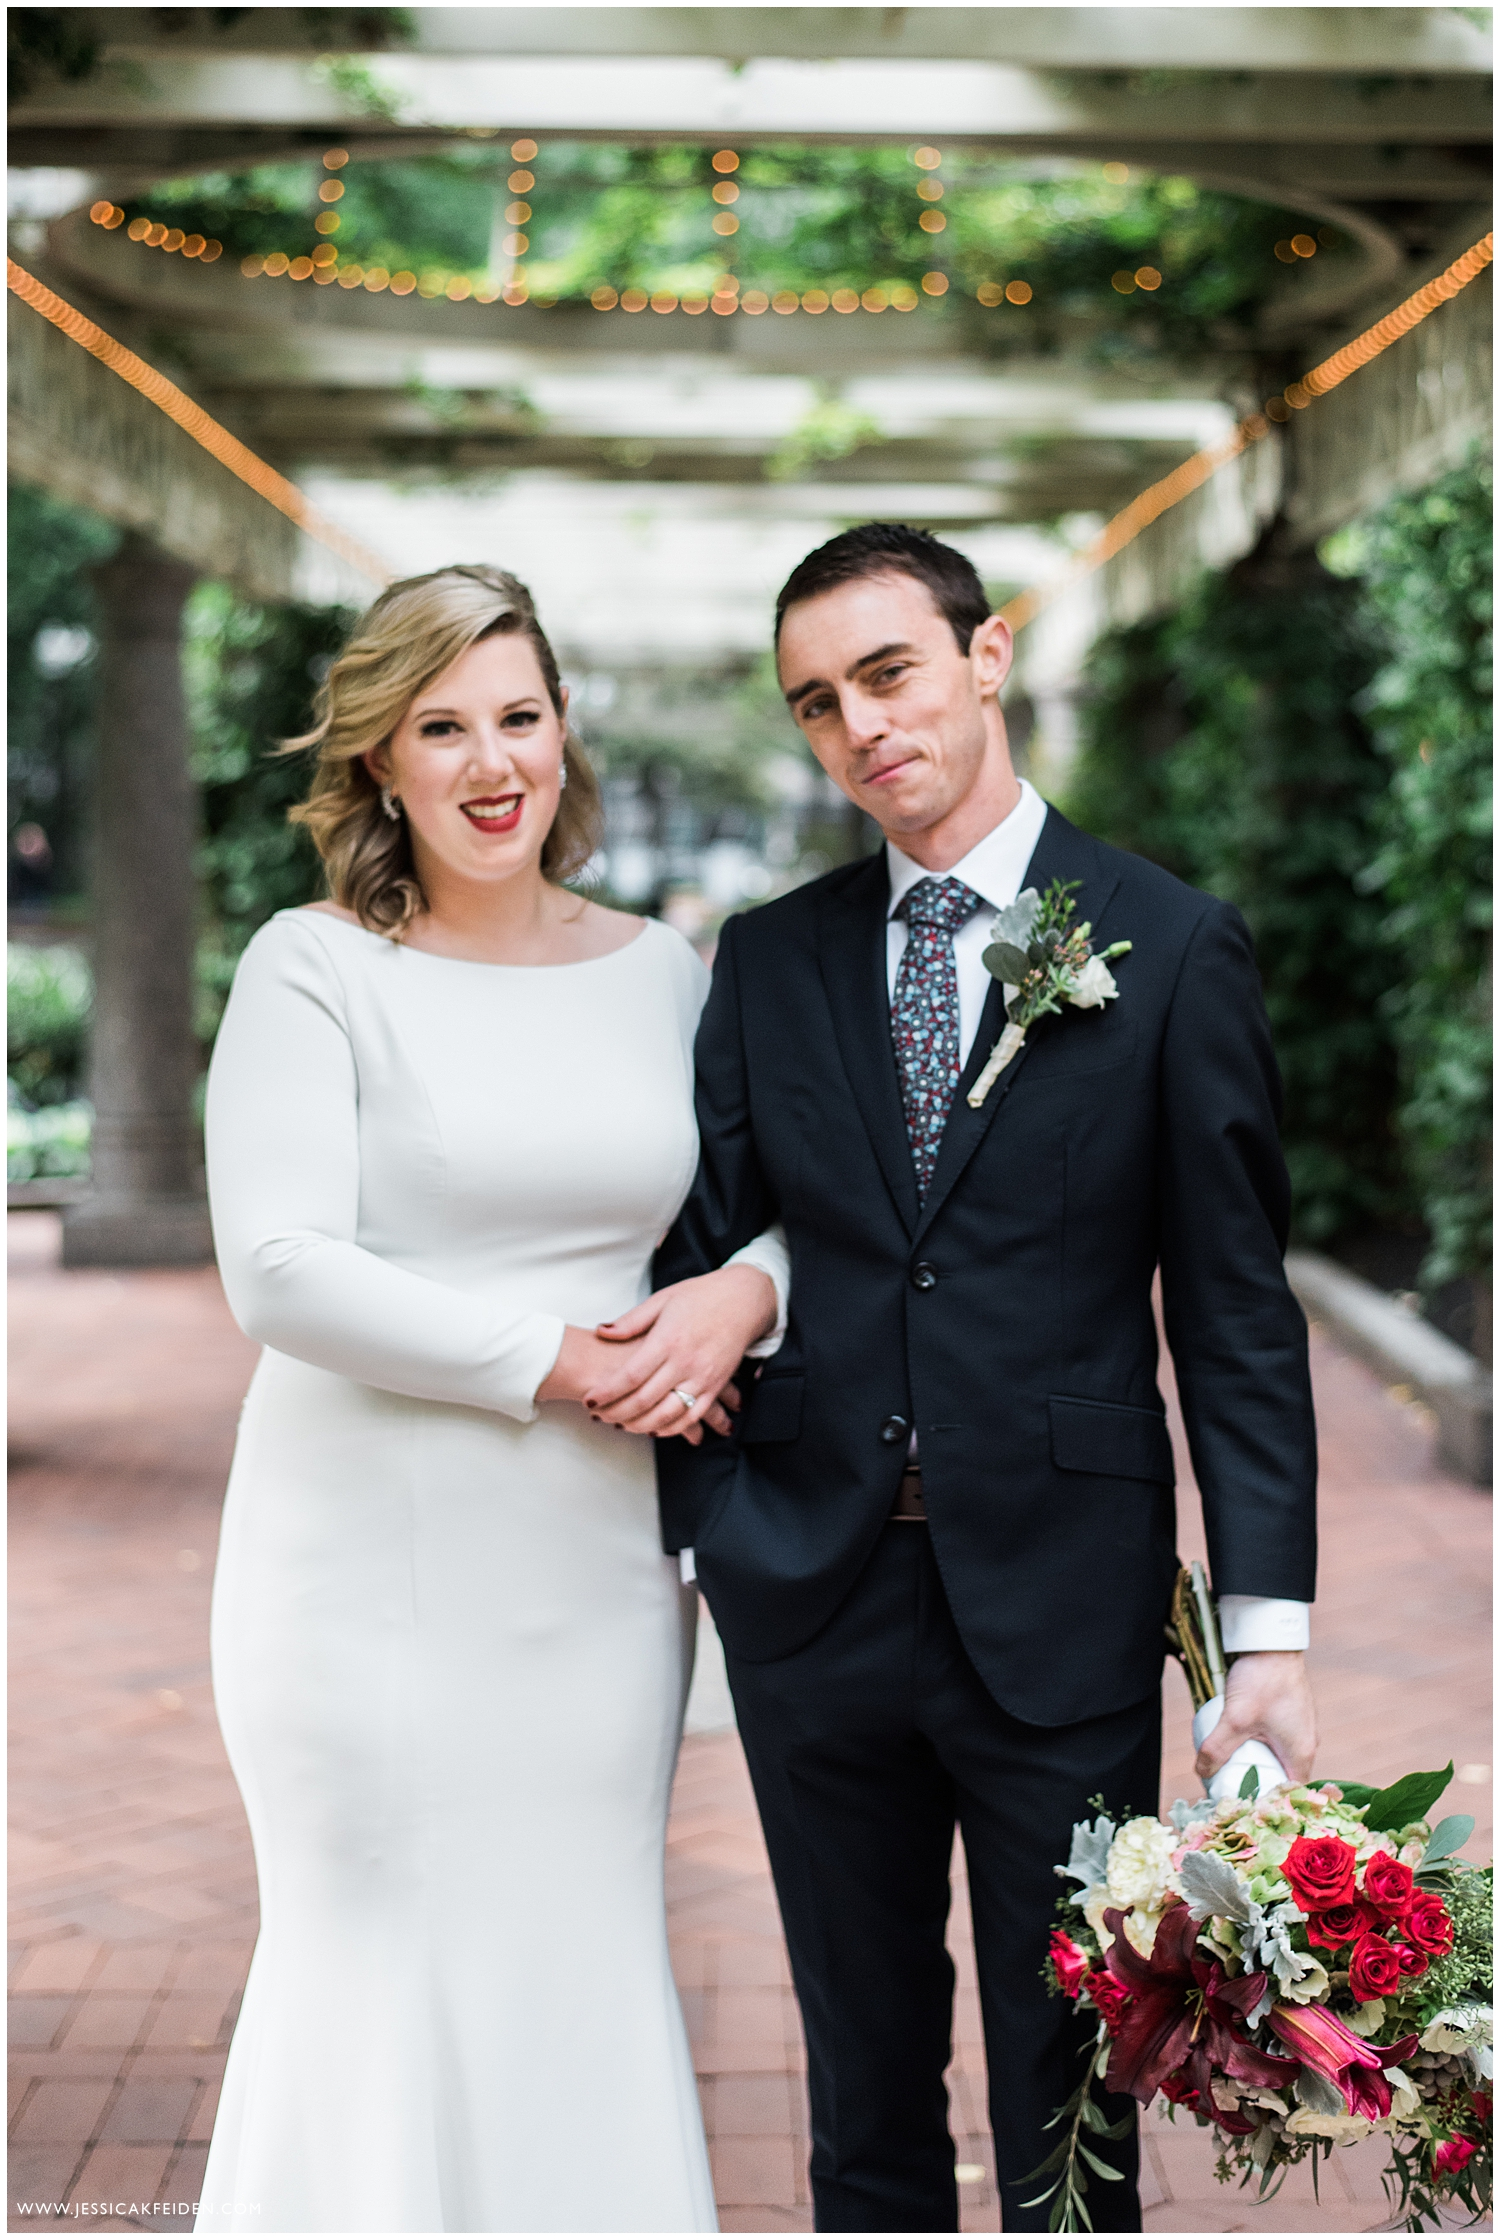 Jessica K Feiden Photography_The State Room Boston Wedding Photographer_0028.jpg